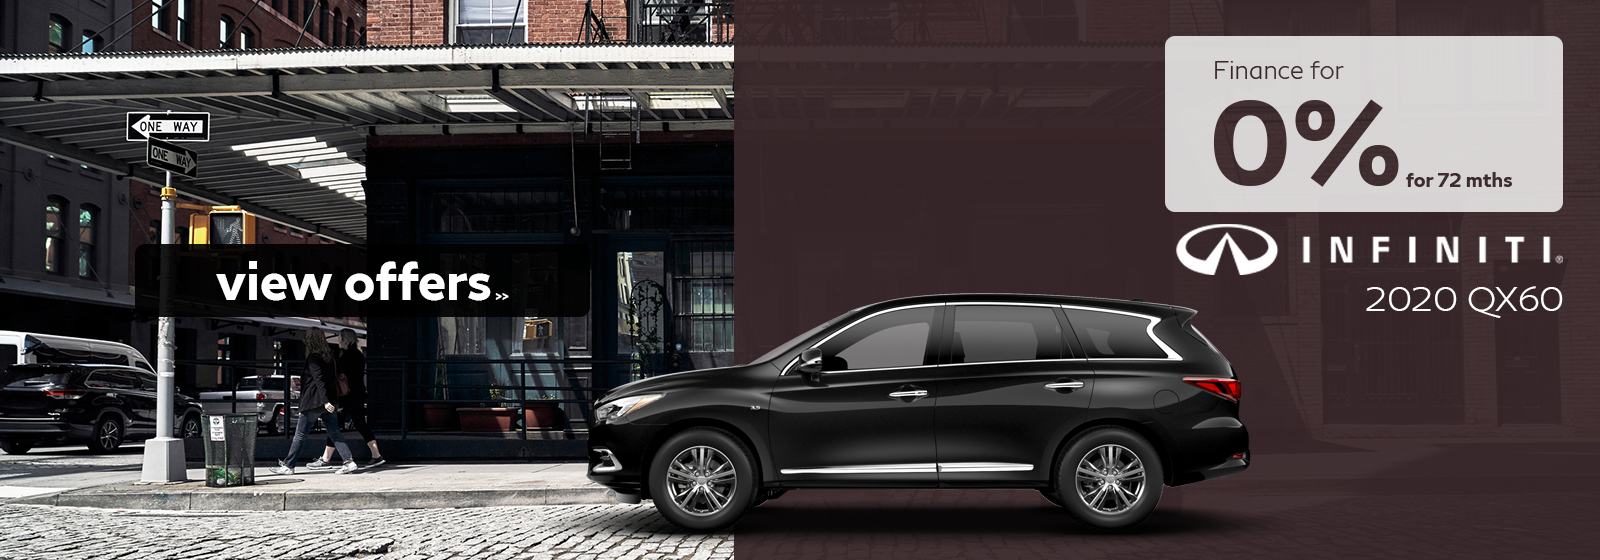 Finance a 2020 QX60 for as low as 0% for 72 months!